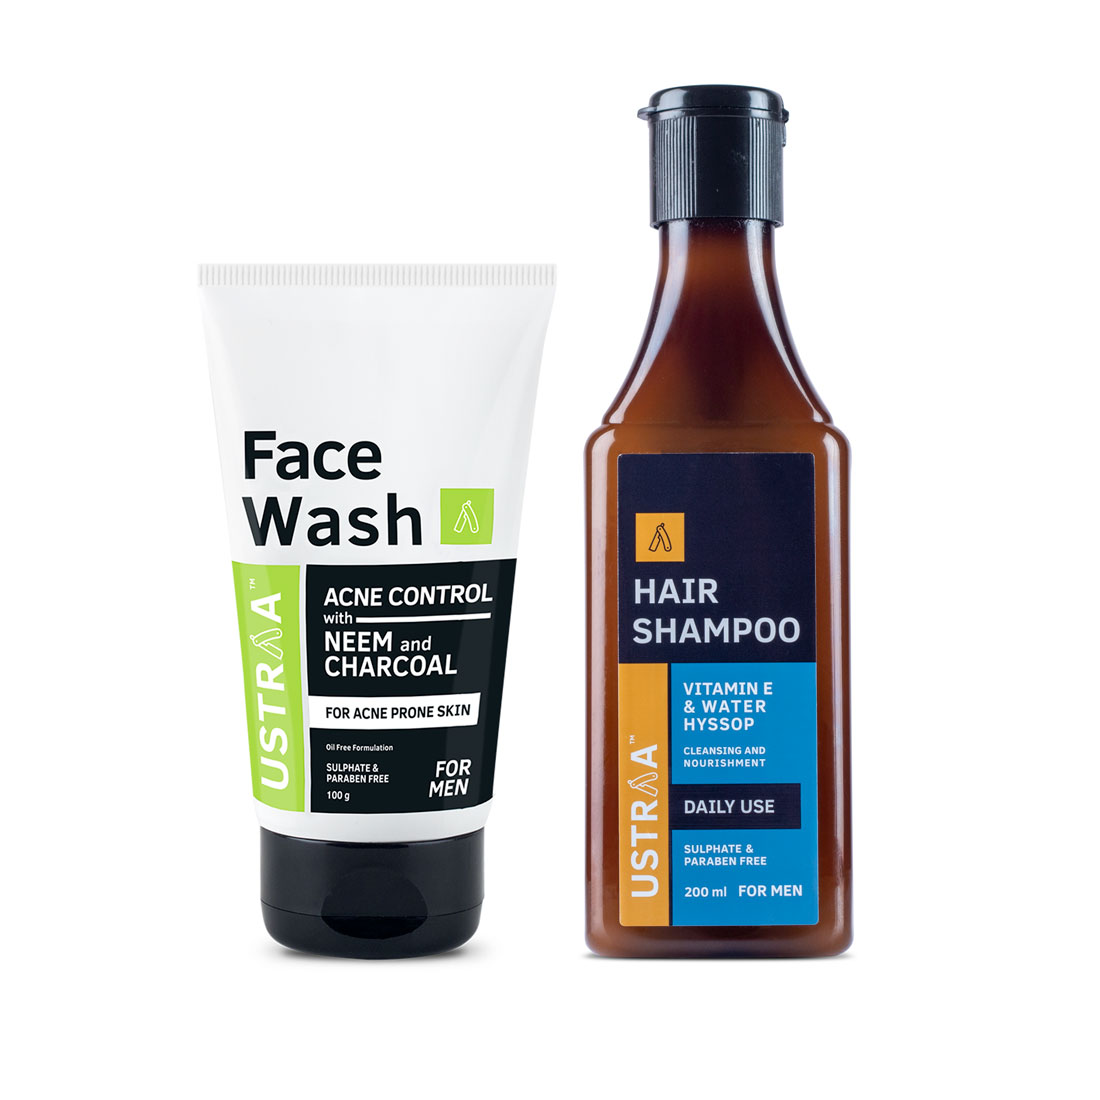 Face Wash Acne Control and Hair Shampoo Daily Use